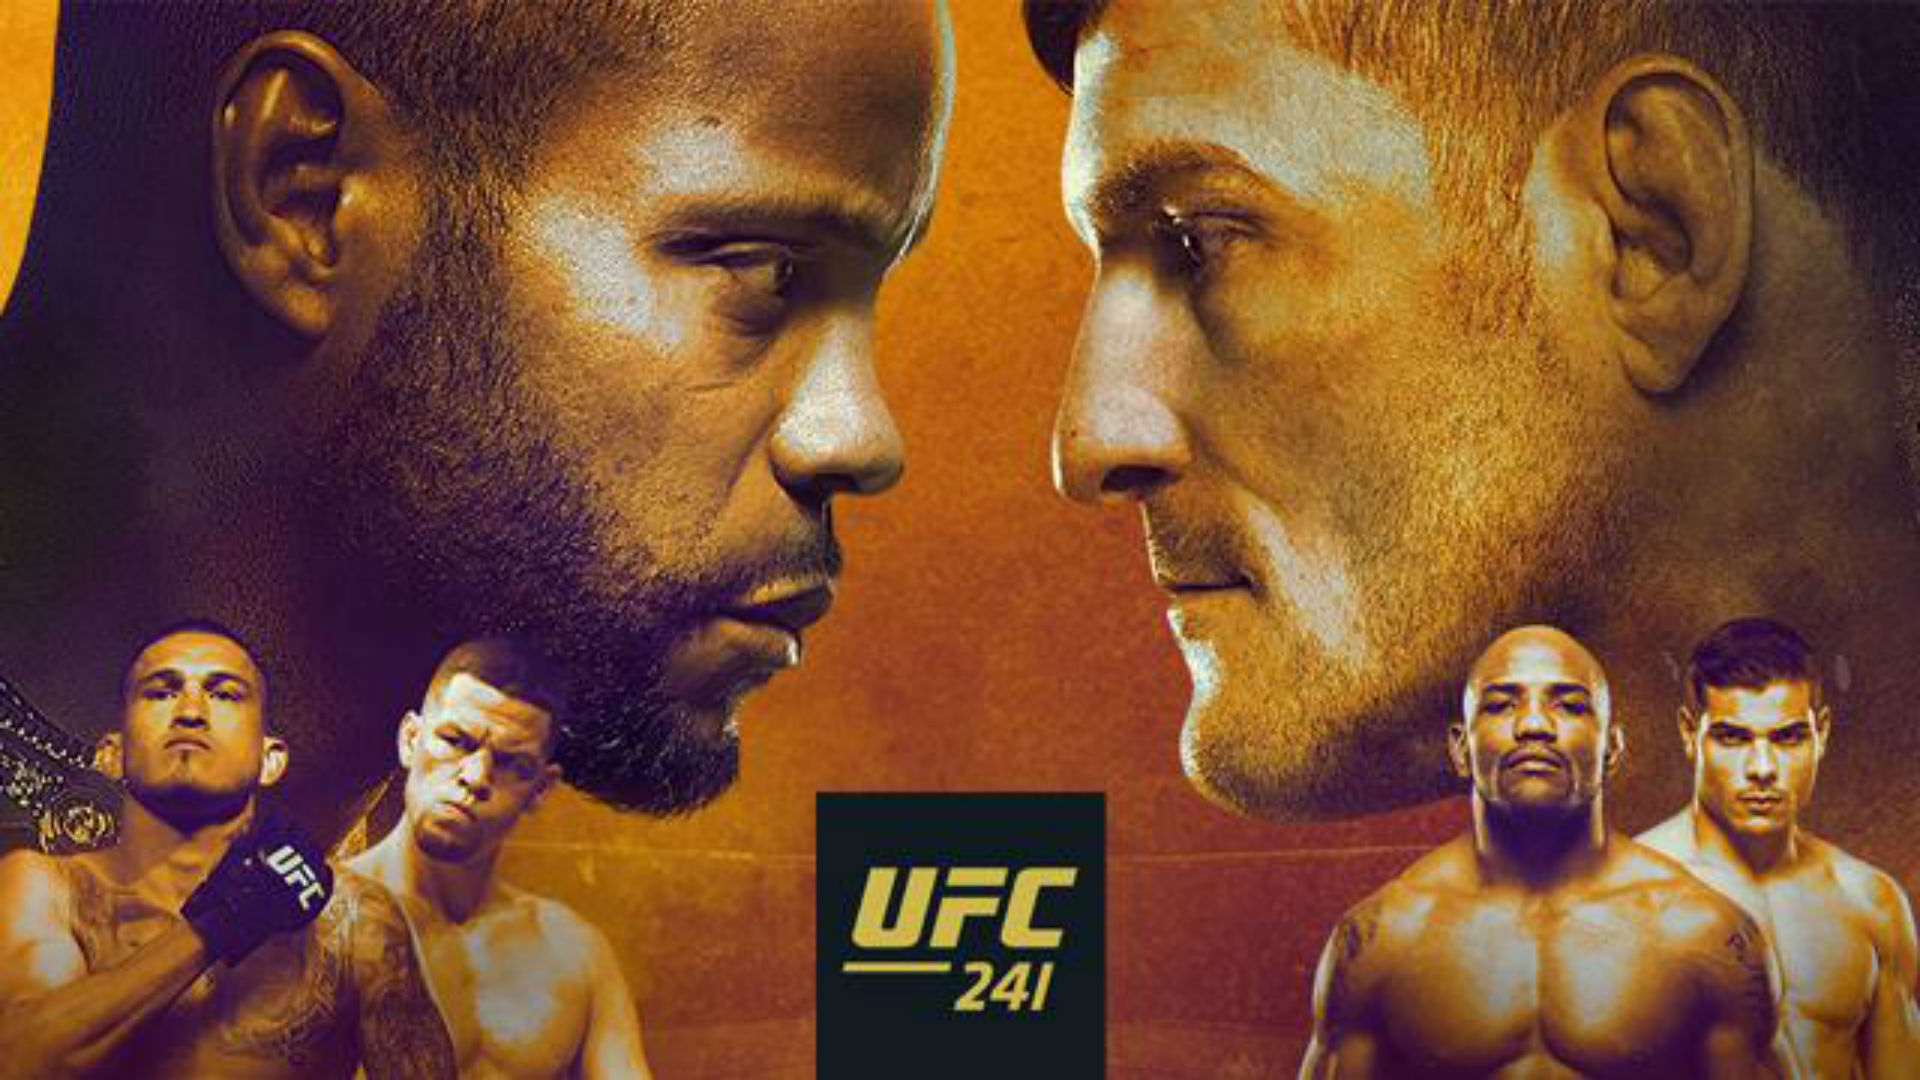 When is UFC 241 - Cormier vs Miocic? How to watch, per per